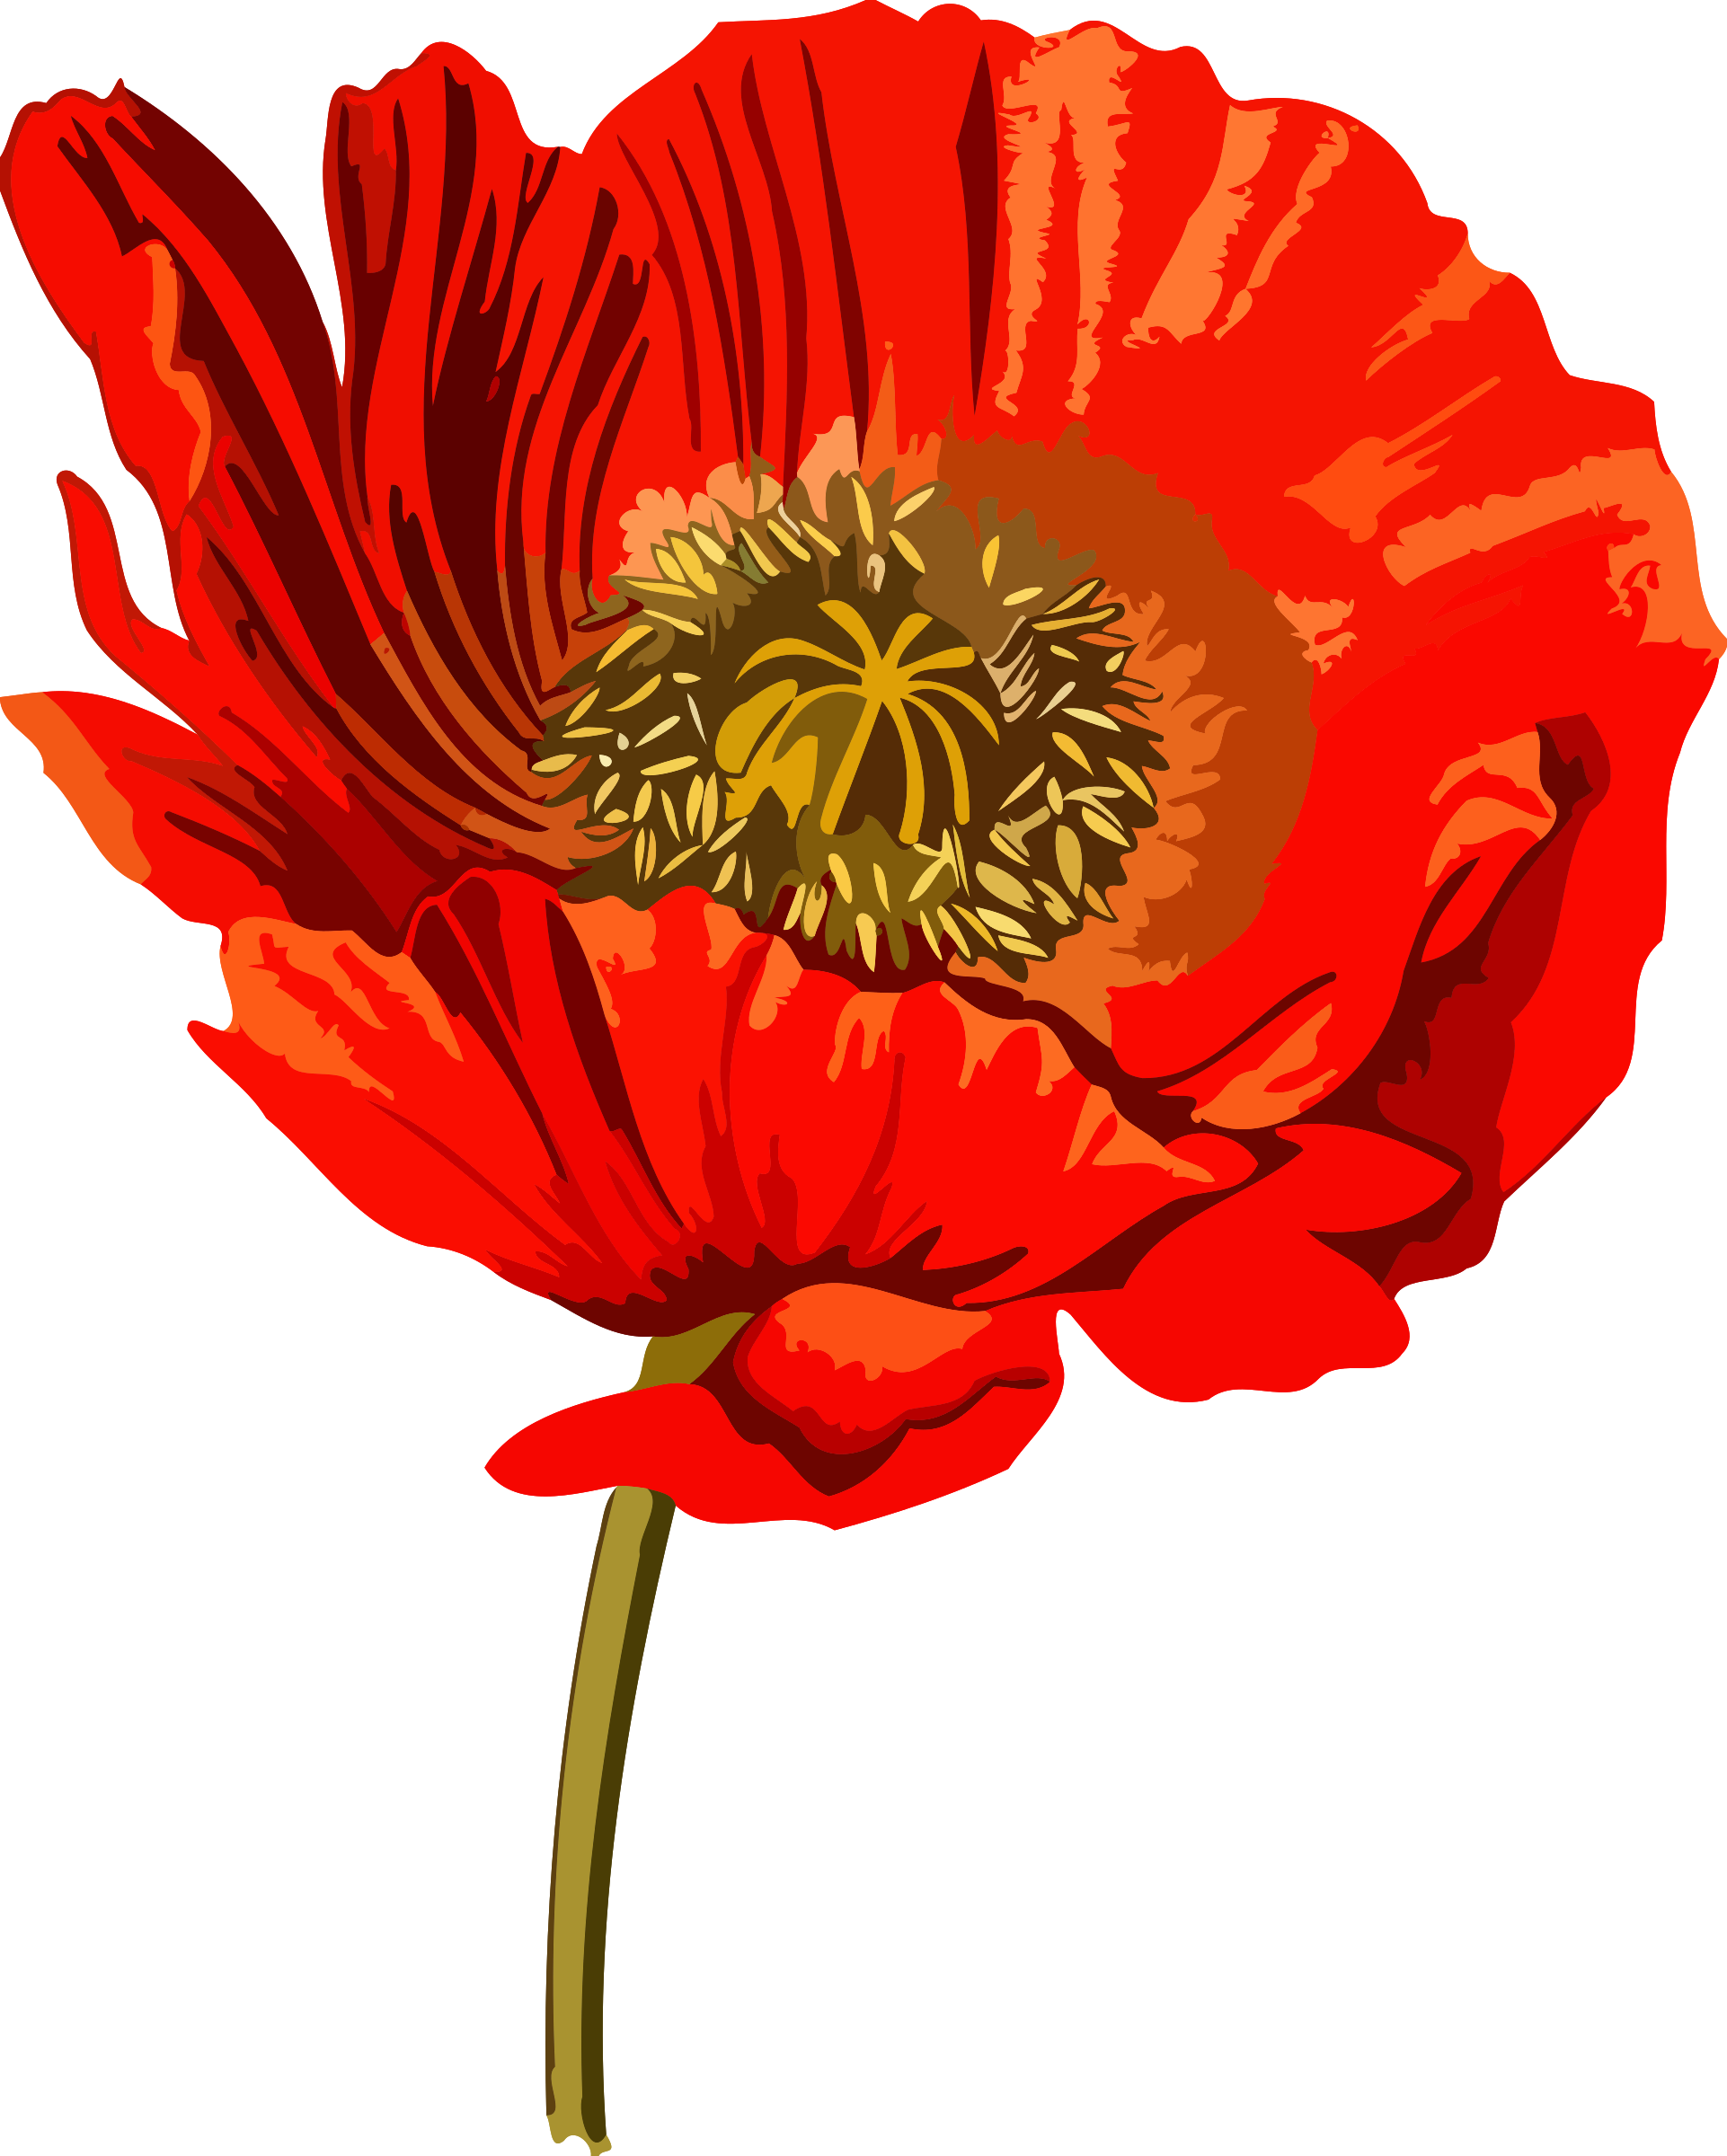 Opium low resolution big. Poppy clipart poppy flower